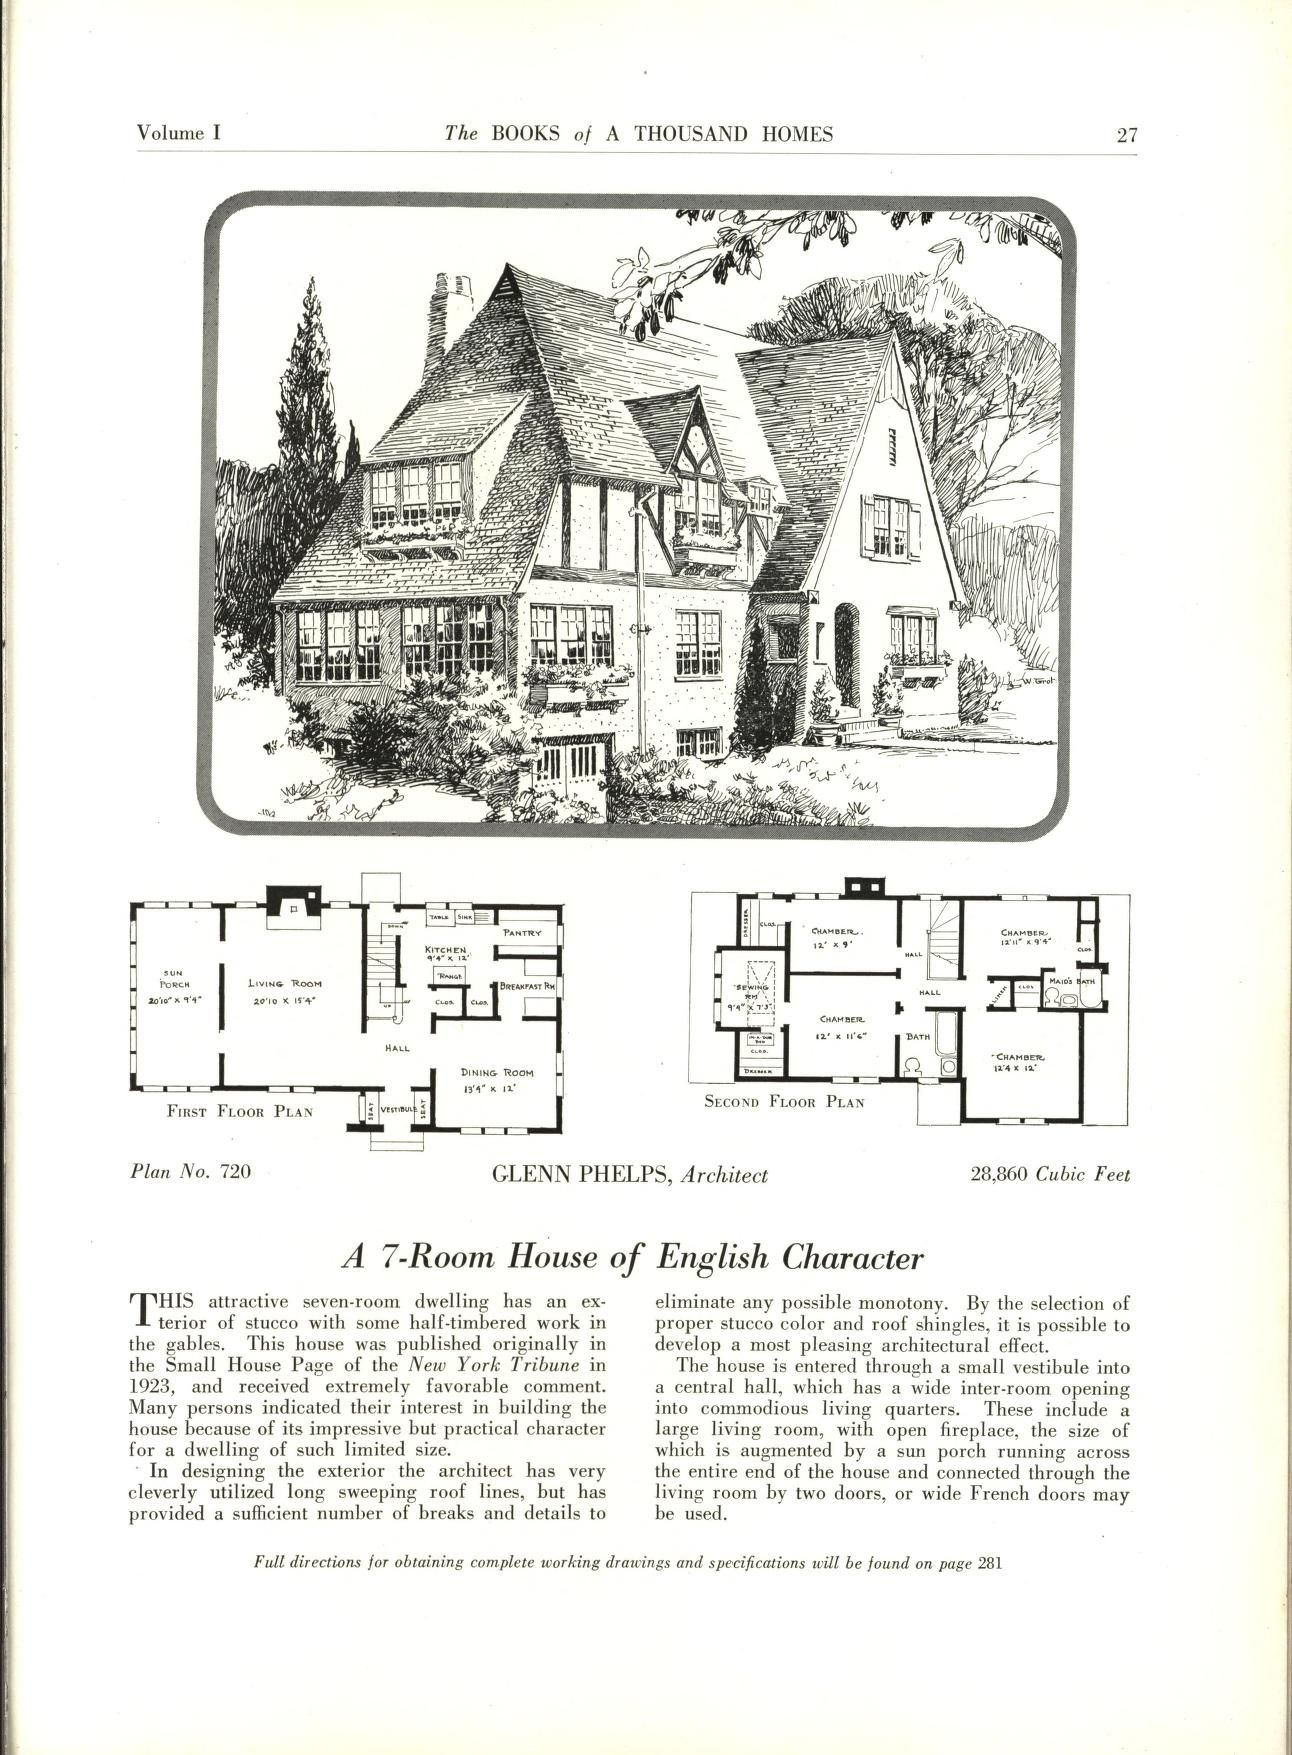 The books of a thousand homes vol 1 plan books for House floor plan books